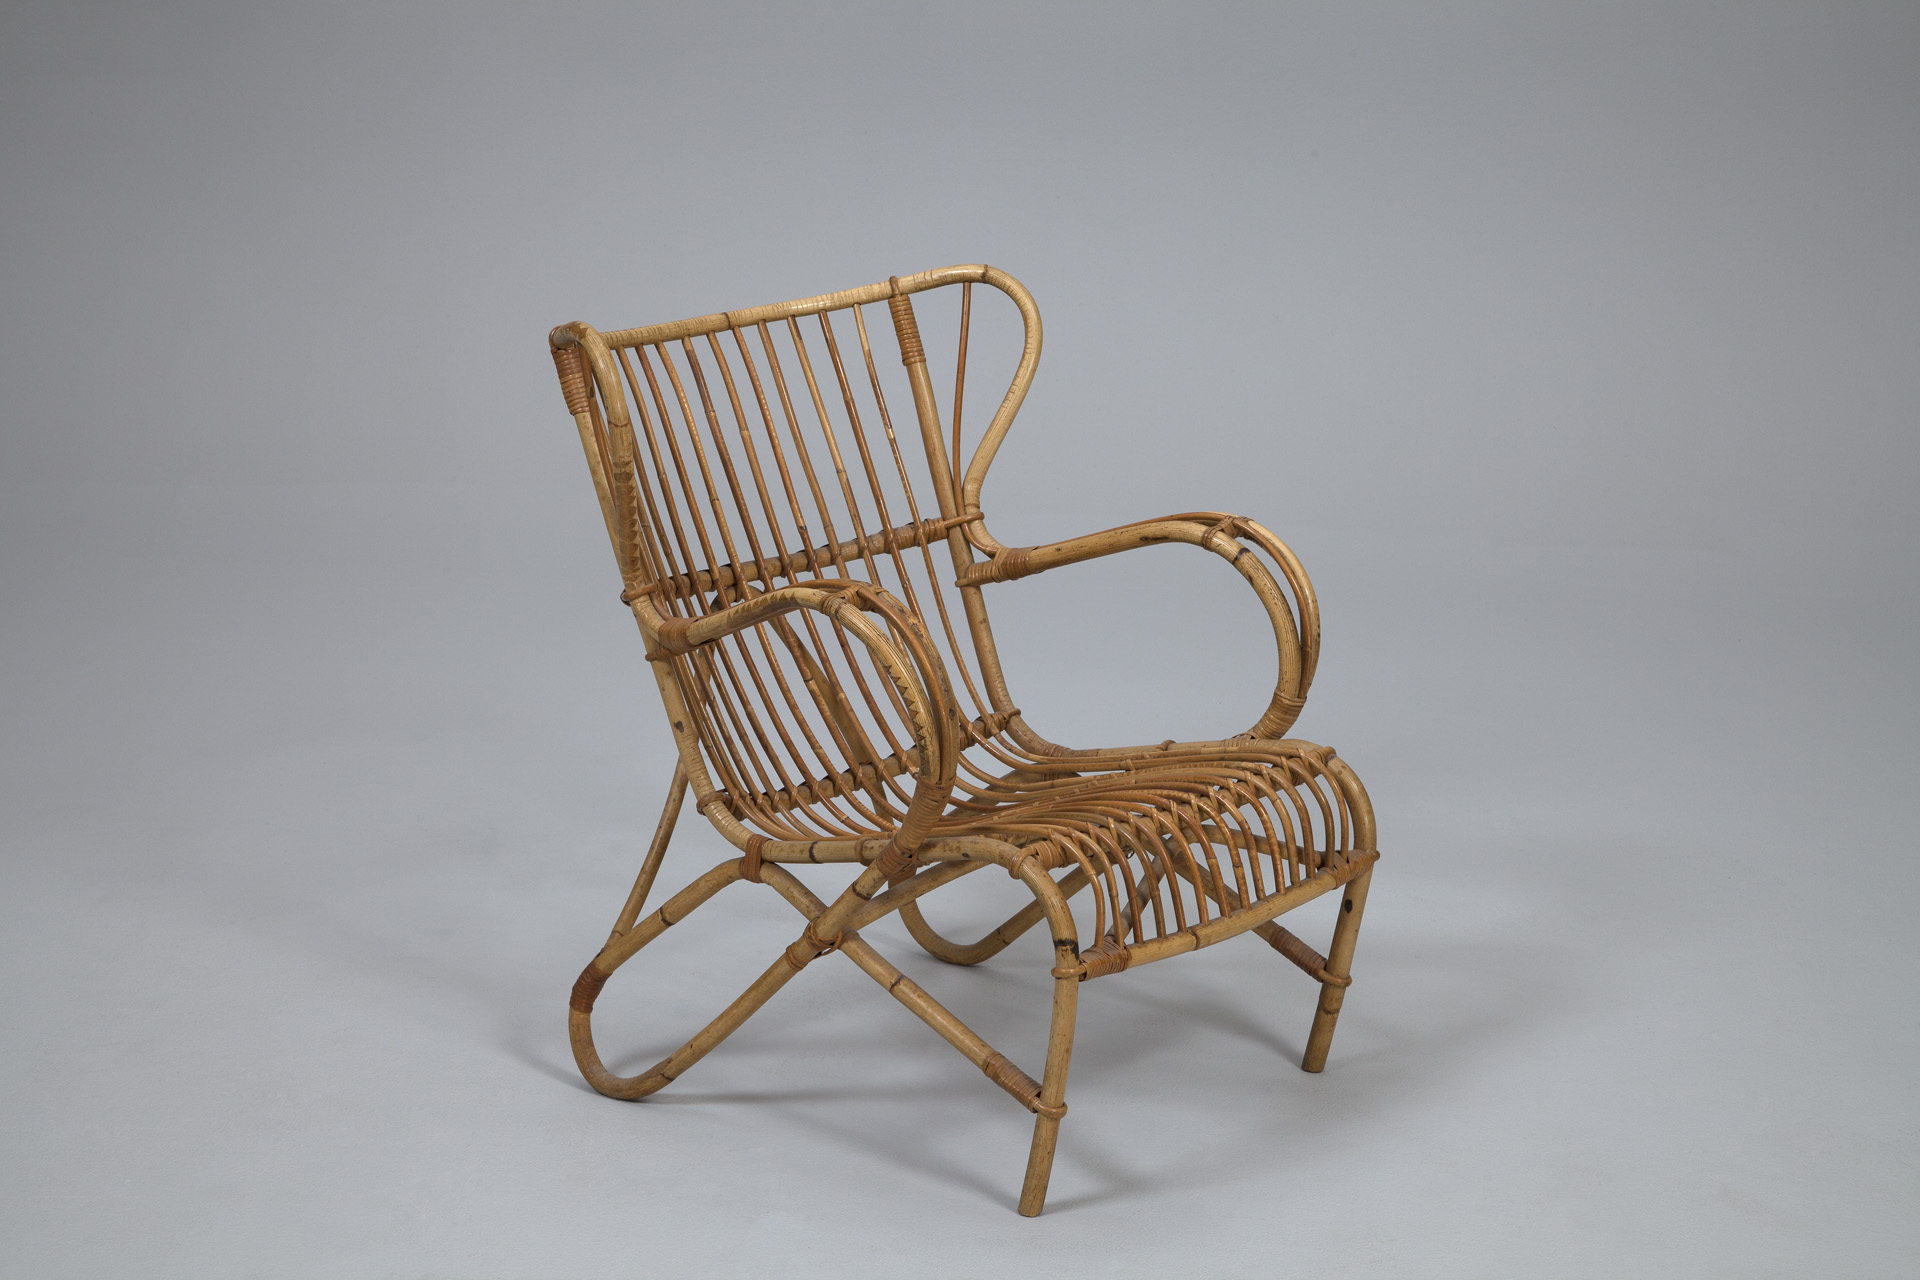 bamboo chairs how much is blue chair bay rum jacksons viggo boesen